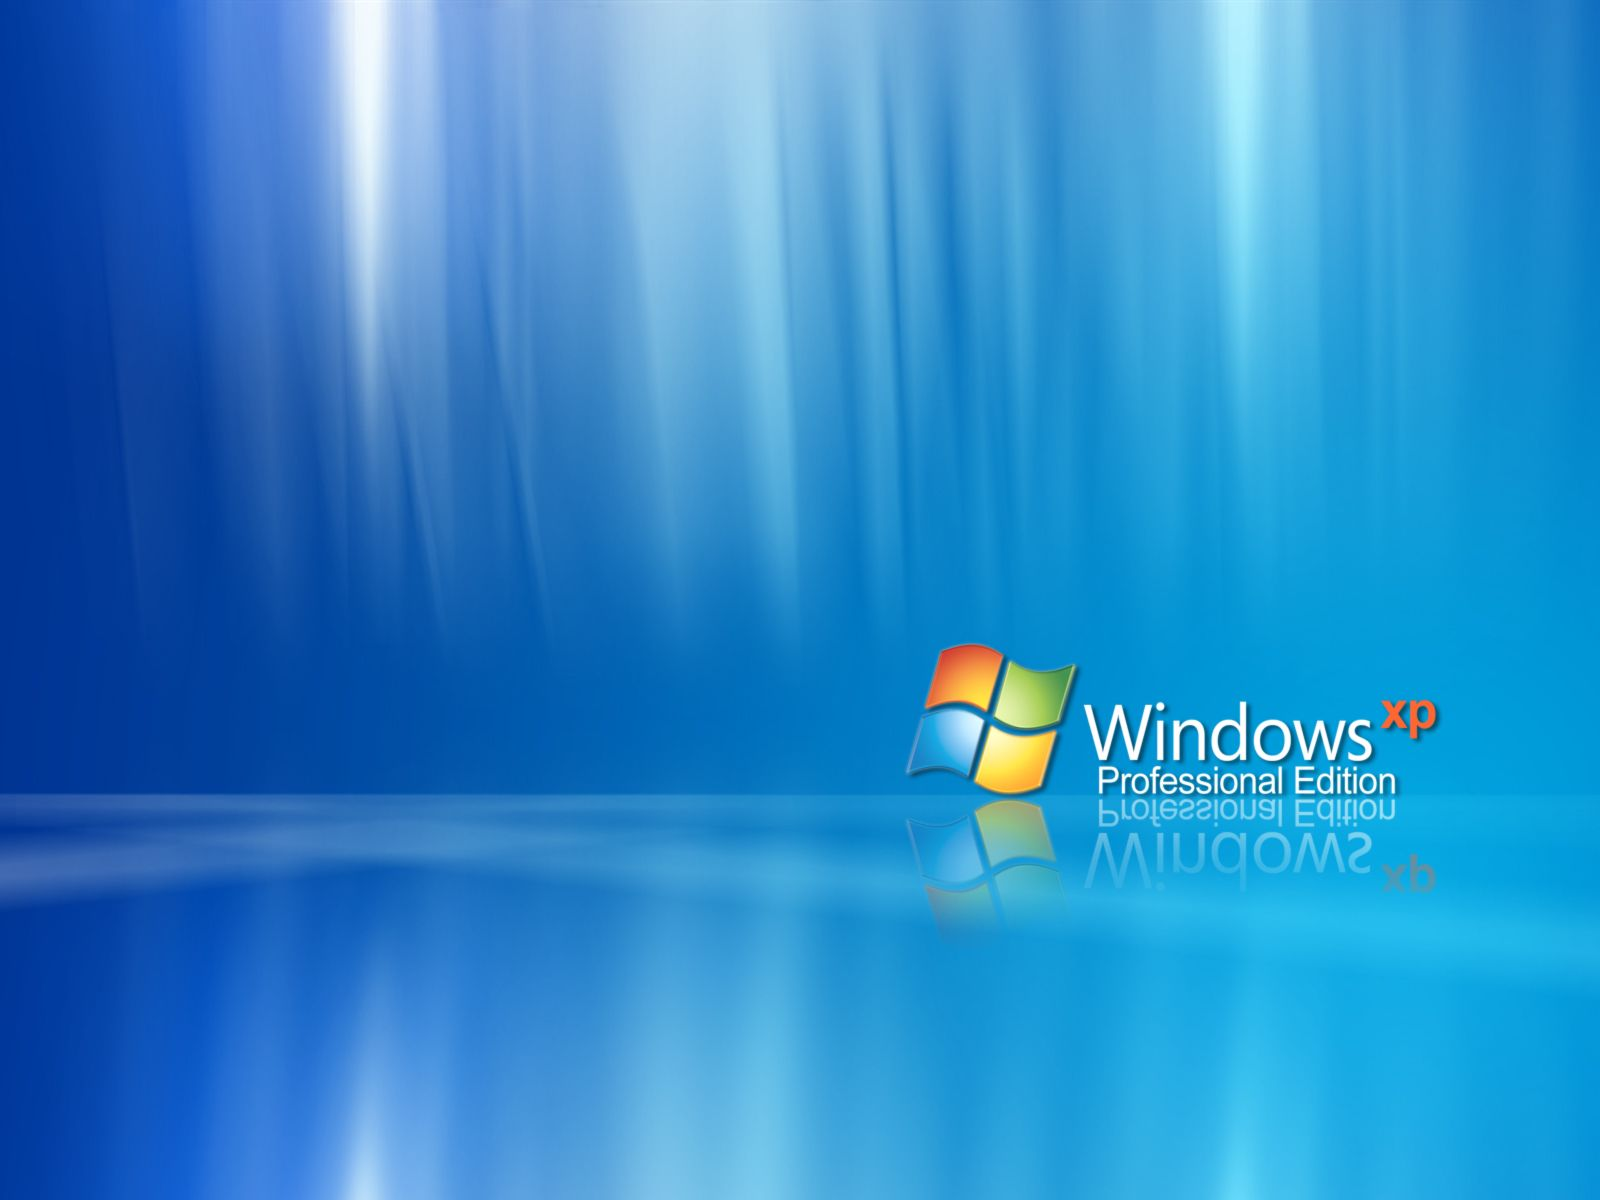 windows xp hd wallpapers wallpaper 1600a—1200 xp hd wallpapers 68 wallpapers